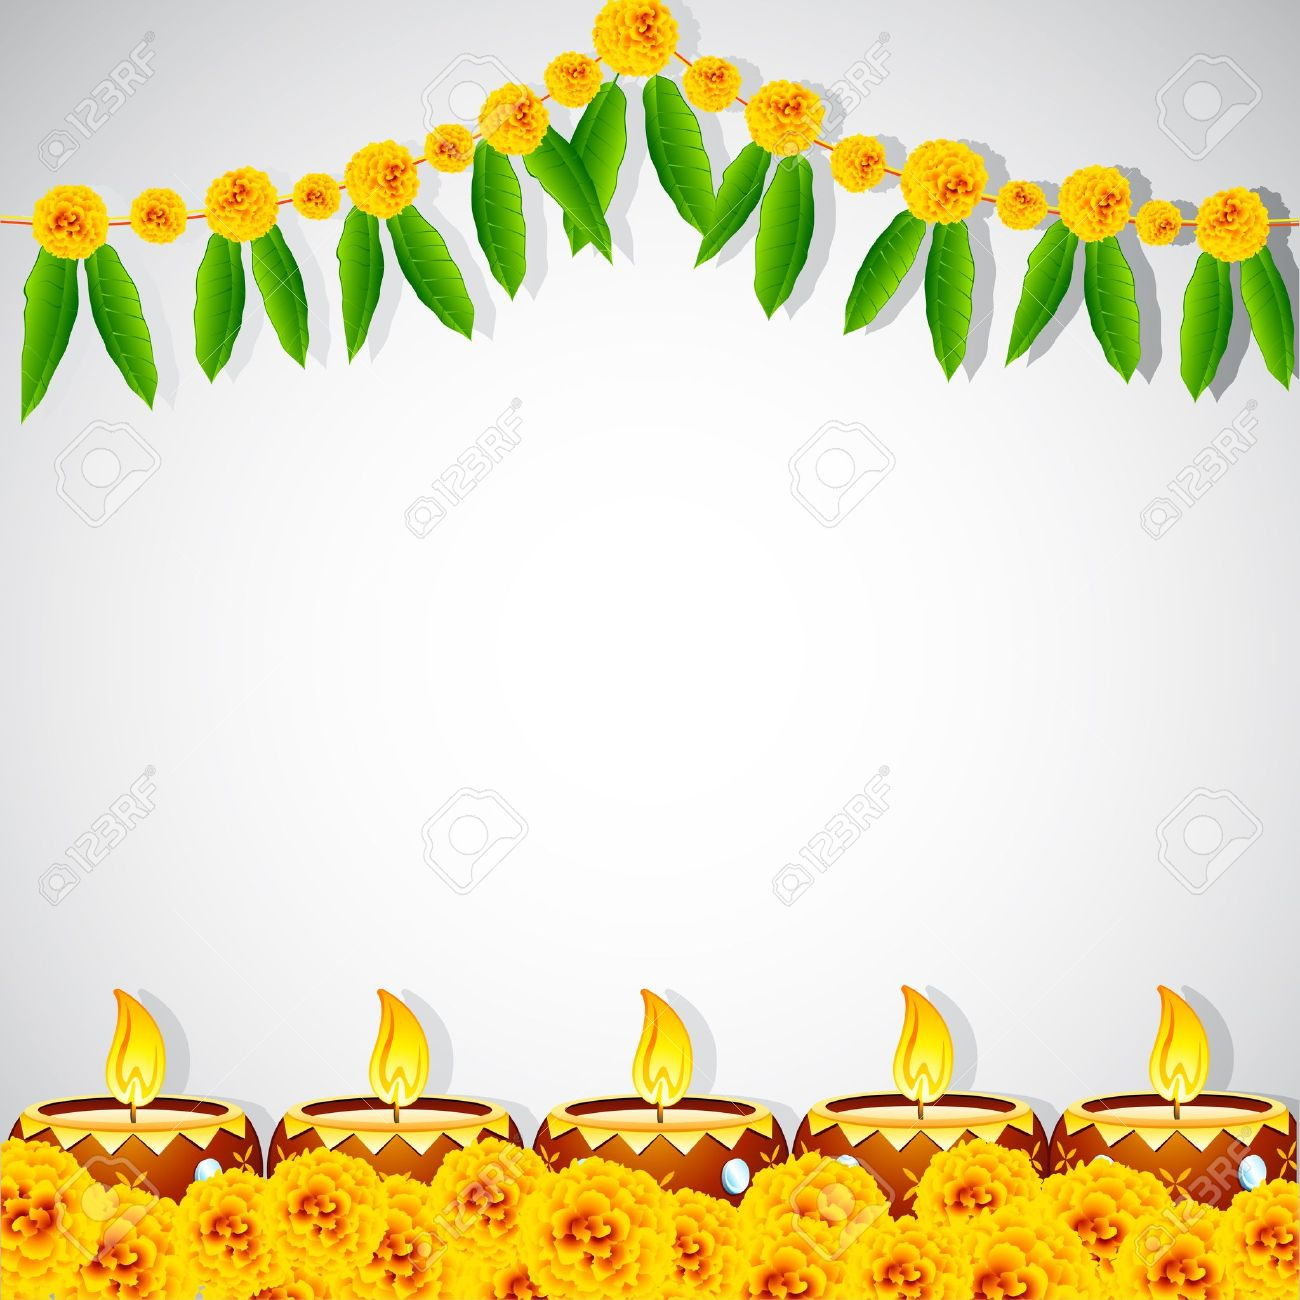 Indian Festival Decoration Illustration Of Burning Decorated Diya On Colorful Rangoli Royalty